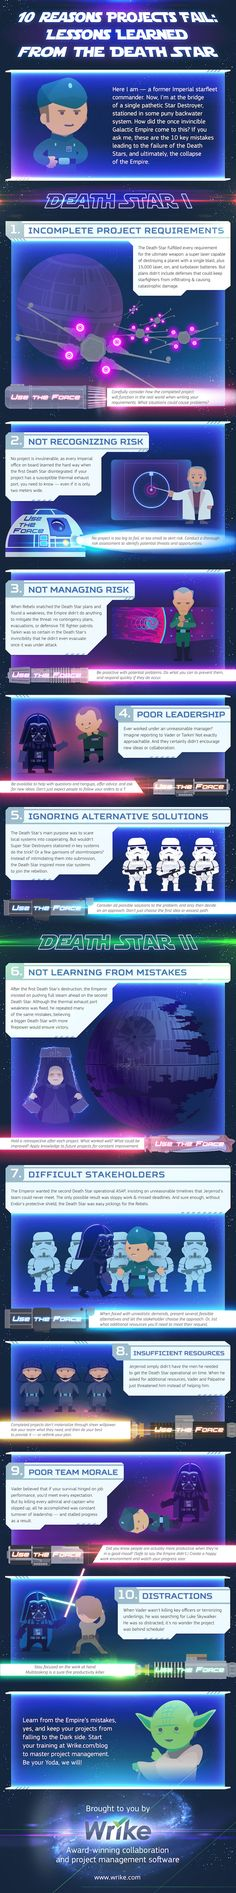 10 Reasons Project Failed Lessons Learned From The Death Star #infographic #Project #ProjectManagement #Management